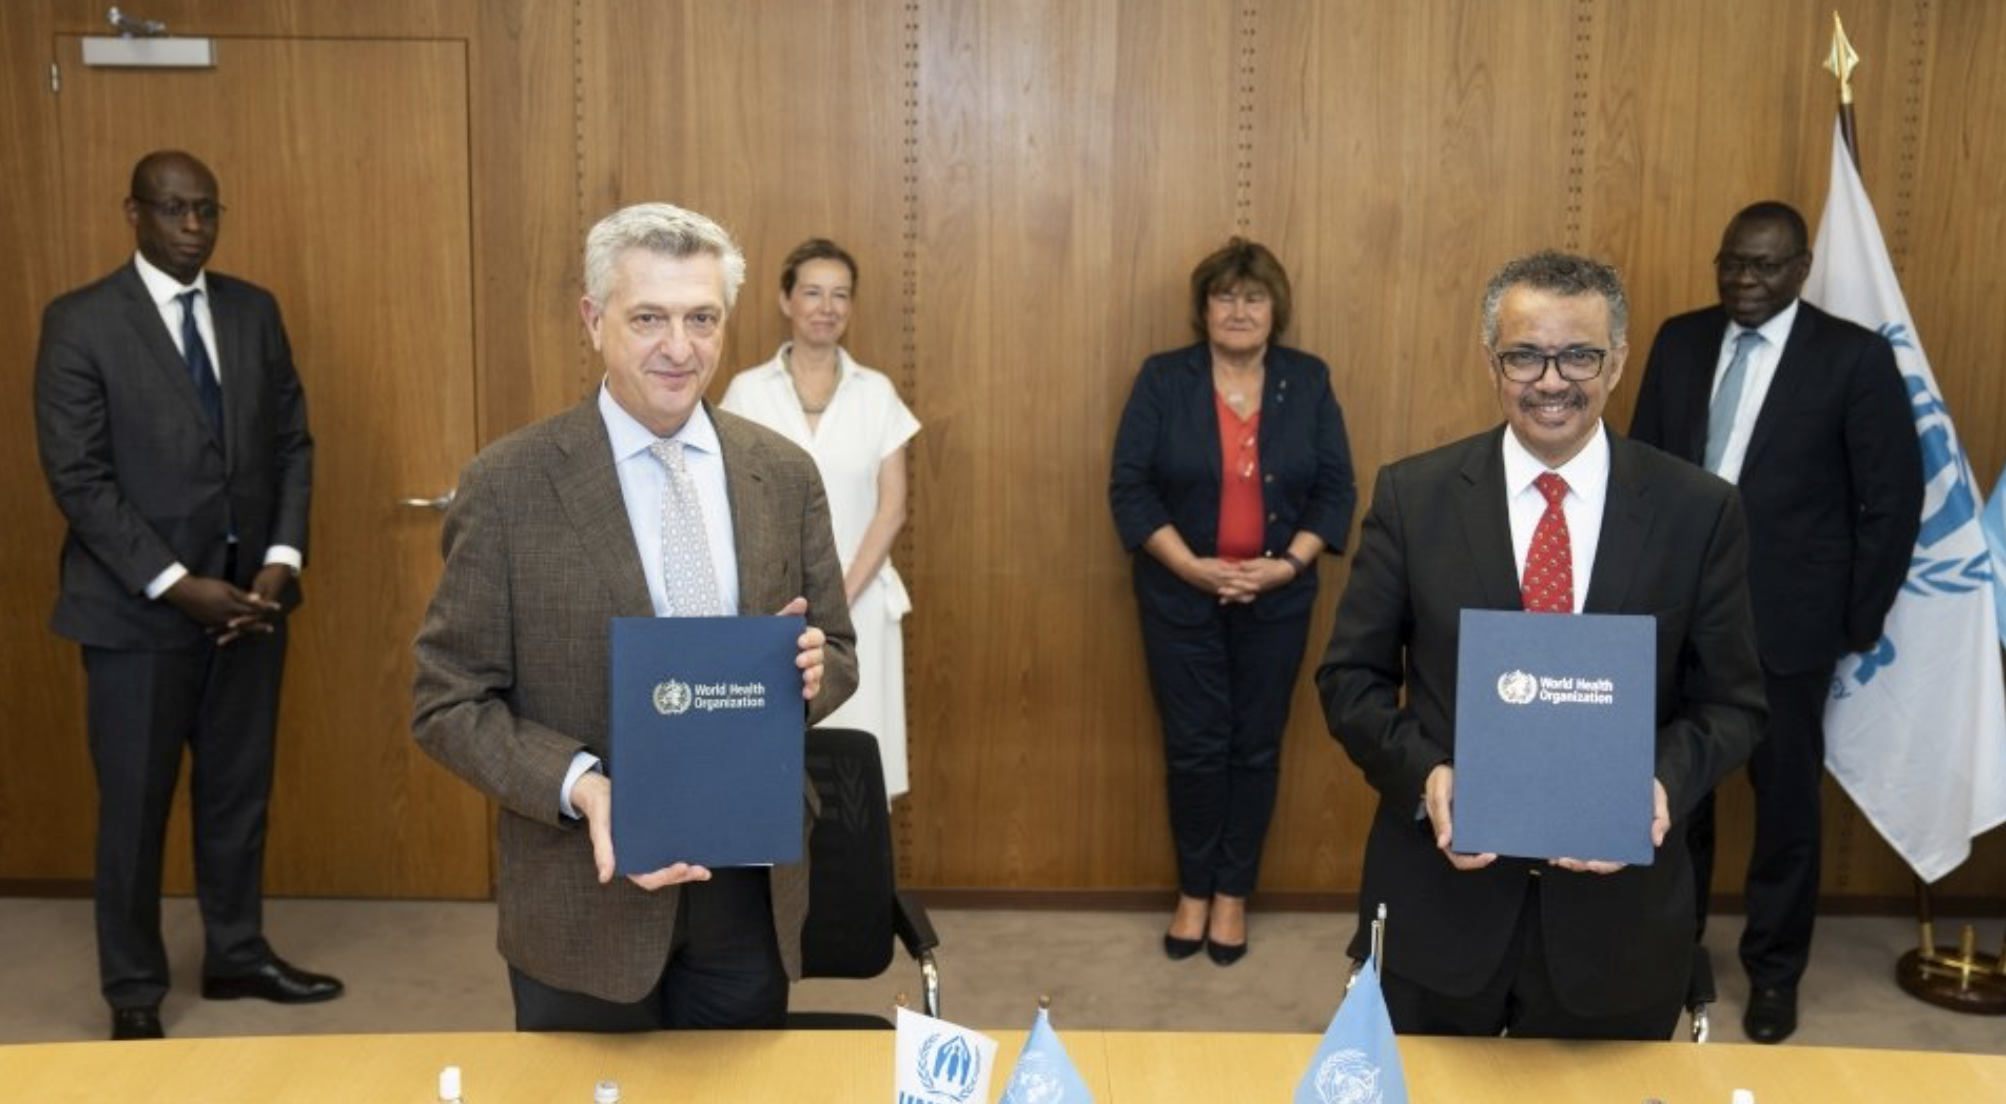 UN High Commissioner for Refugees Filippo Grandi (left) and Director-General World Health Organization Dr. Tedros Adhanom Ghebreyesus sign a Memorandum of Understanding on the integration of refugees in national health preparedness and response plans globally. May 21, 2020, Geneva, Switzerland (Photo by Christopher Black courtesy World Health Organization) Posted for media use